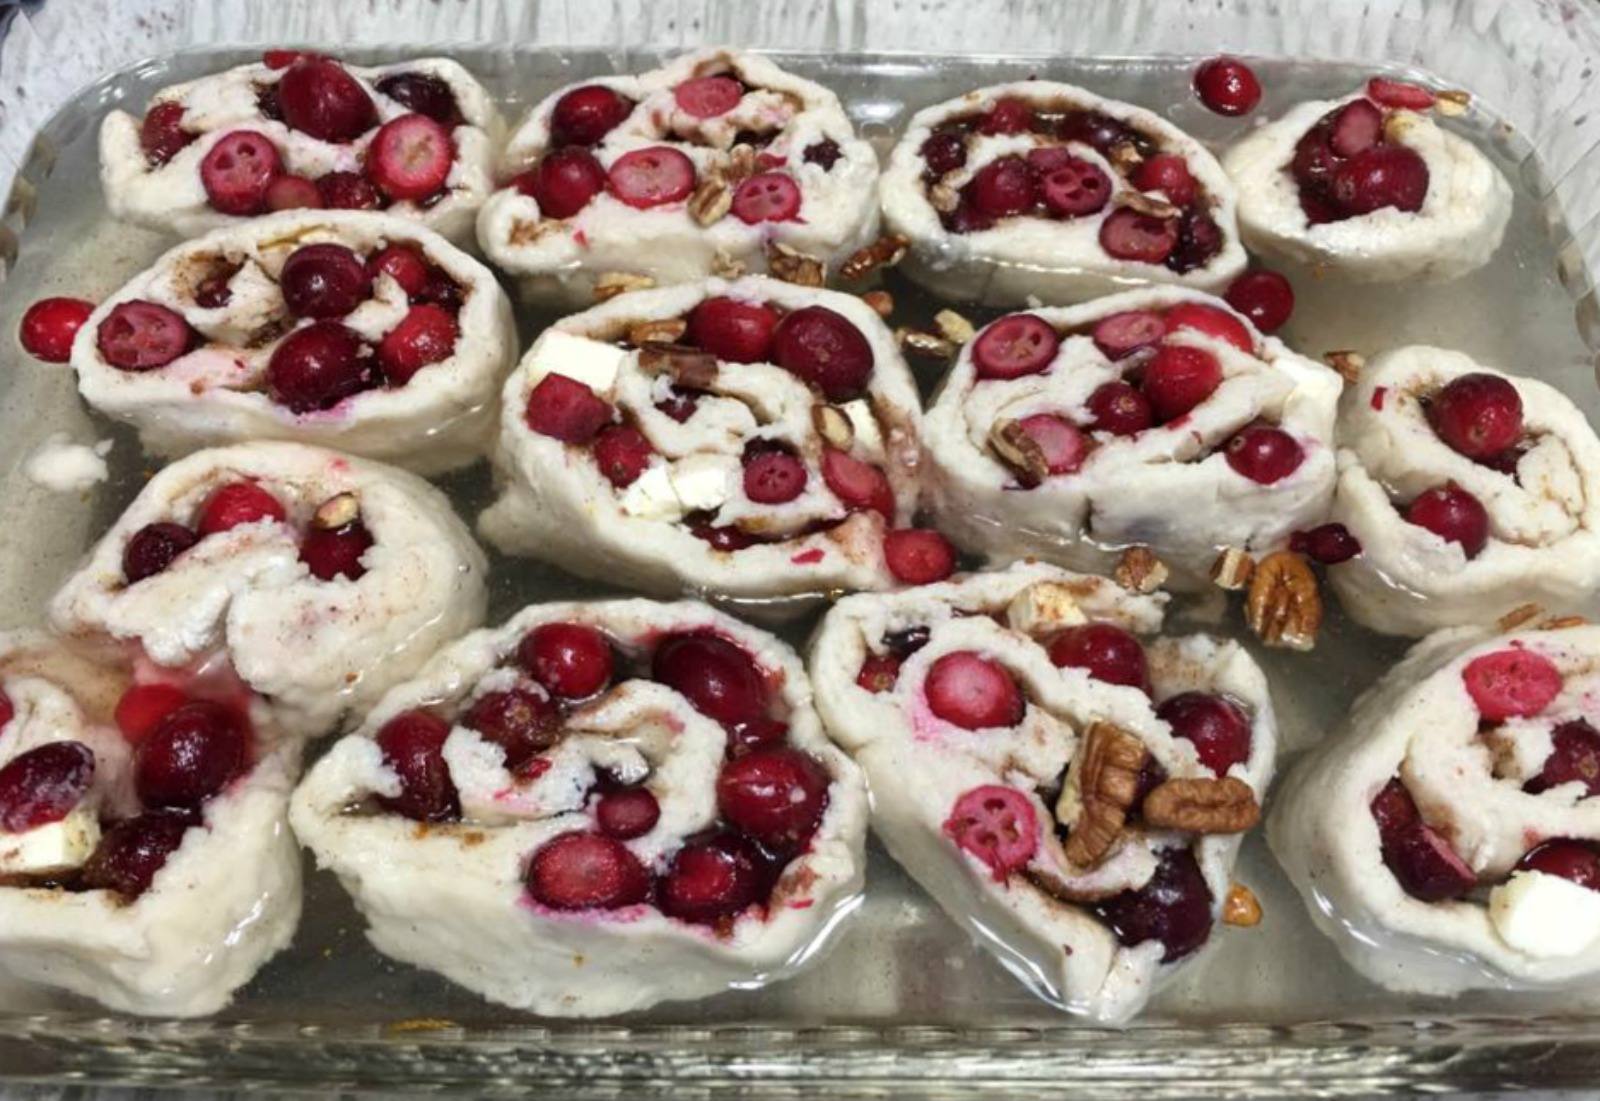 frozen cranberries, dessert, holiday baking, cobbler roll, cape cod select